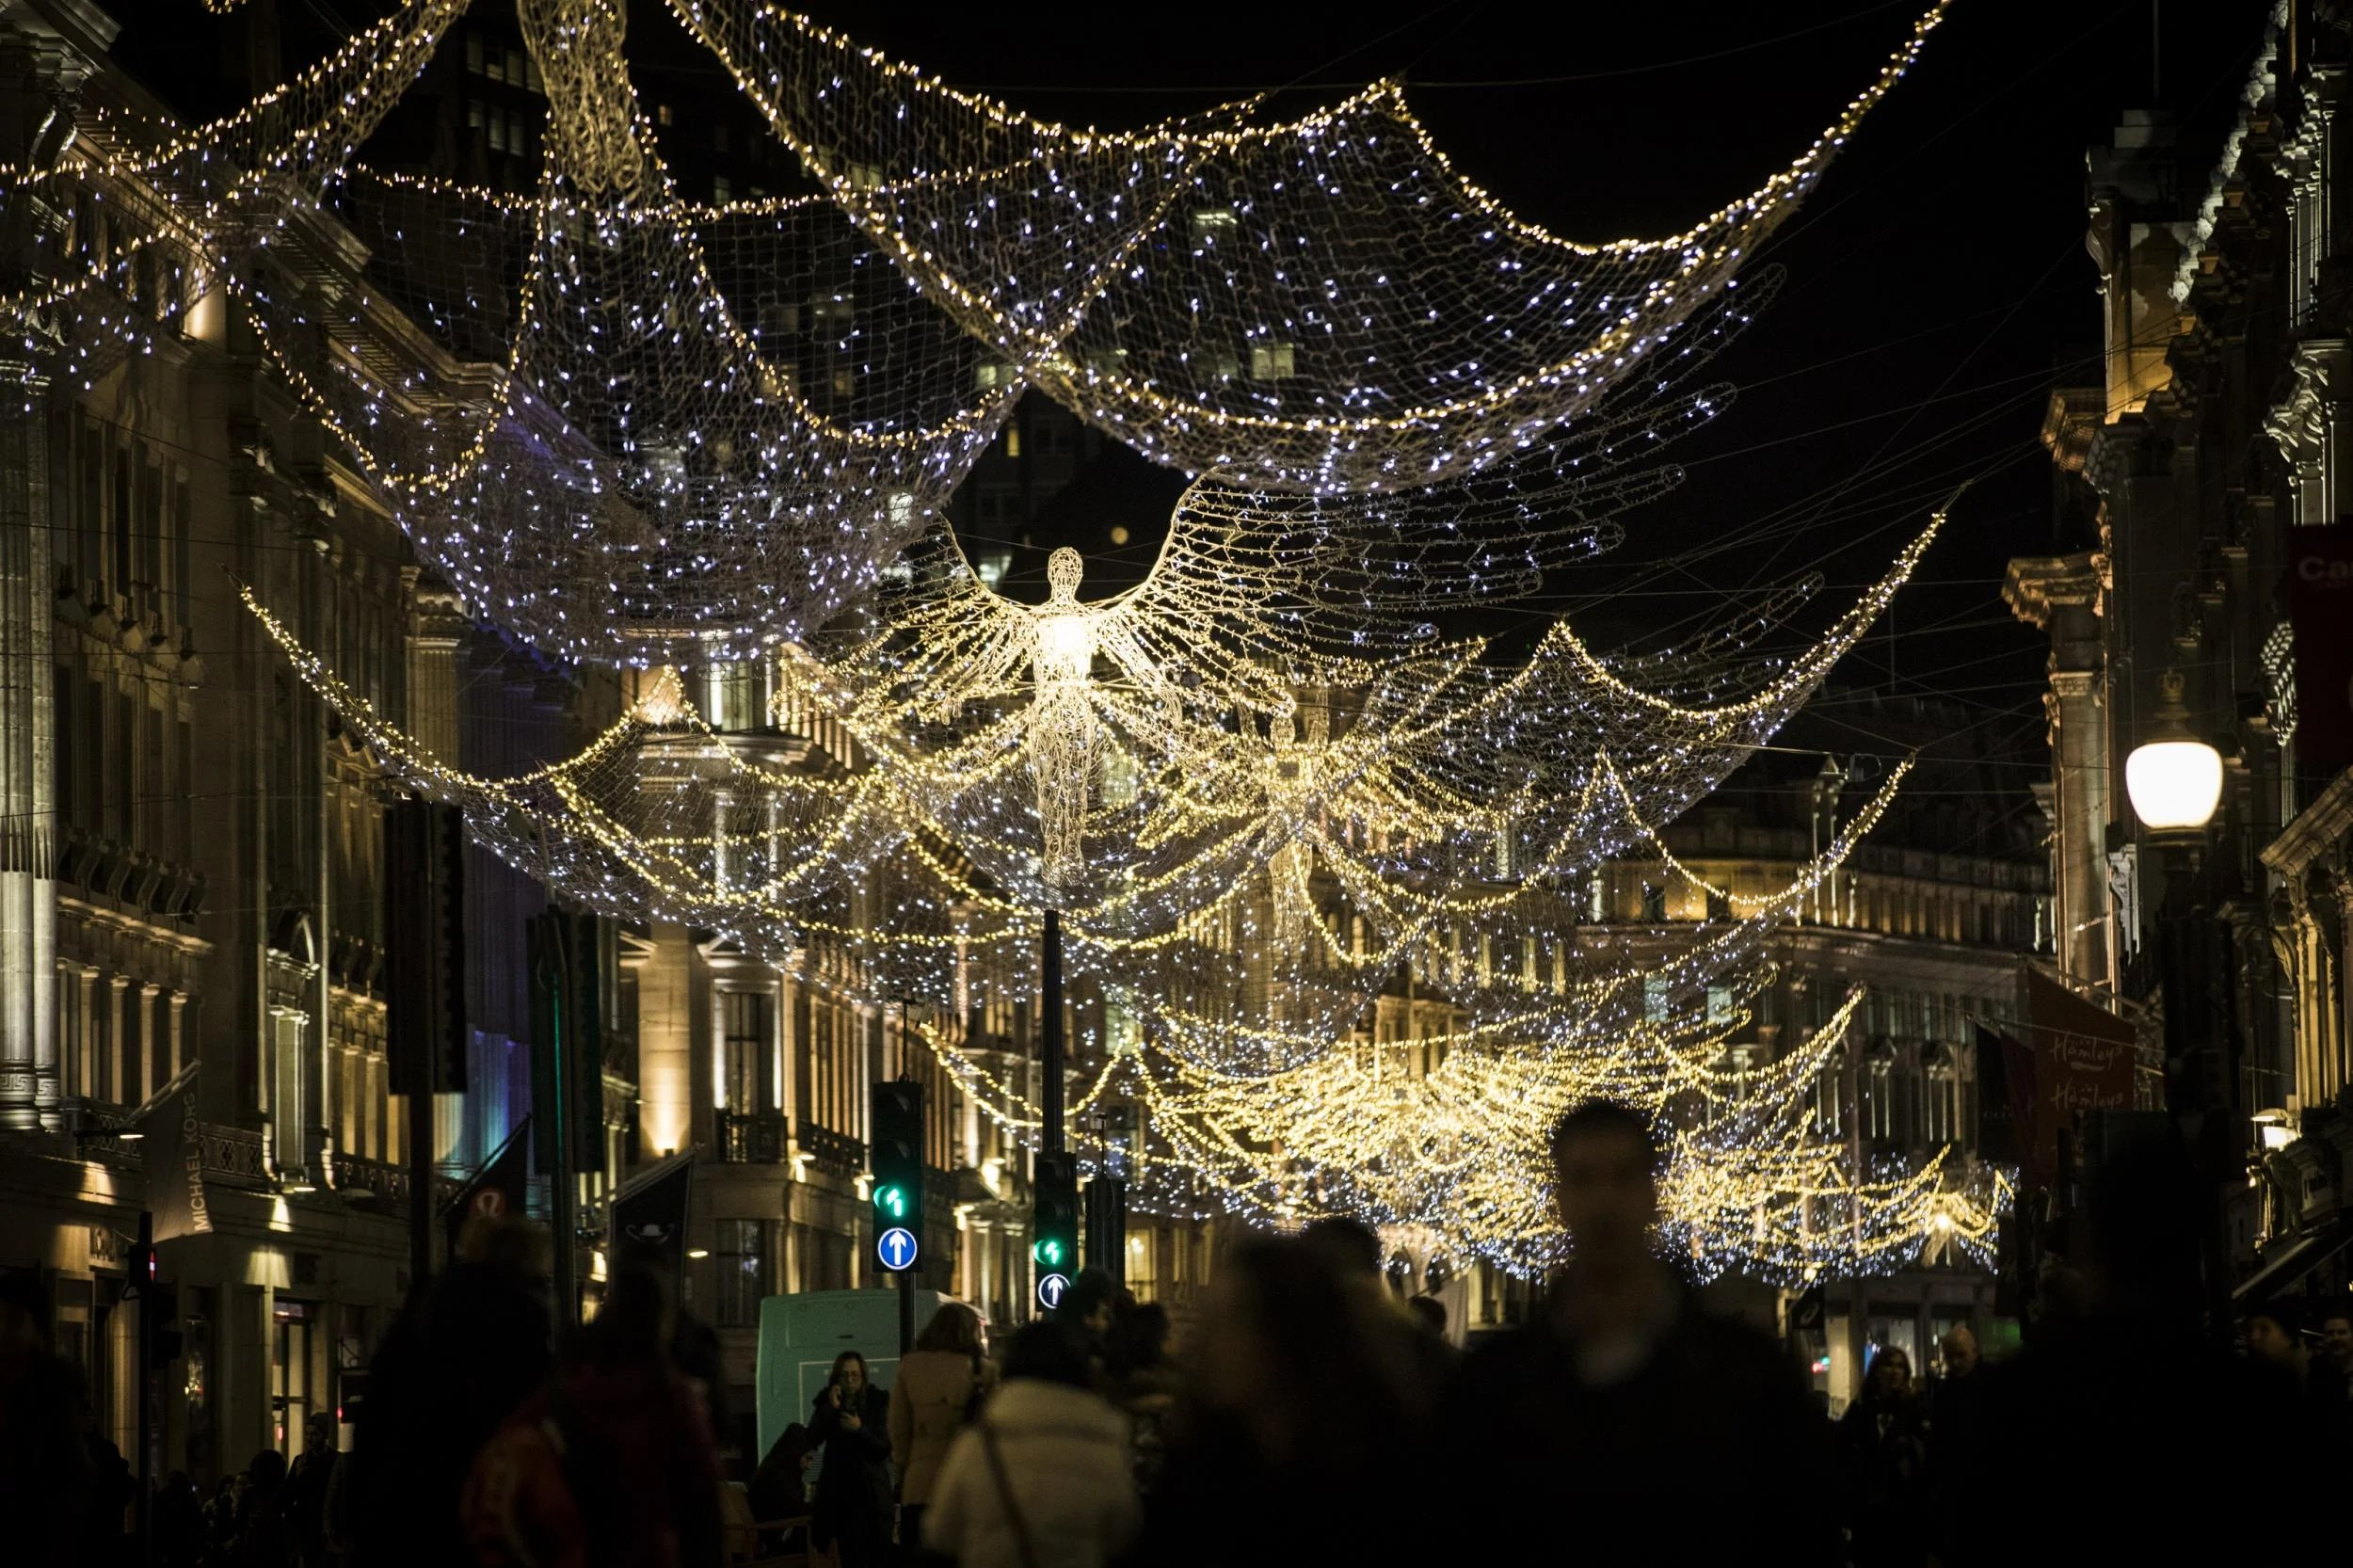 Cordial When Lights London Festive Light Displays When Yswitch On ...